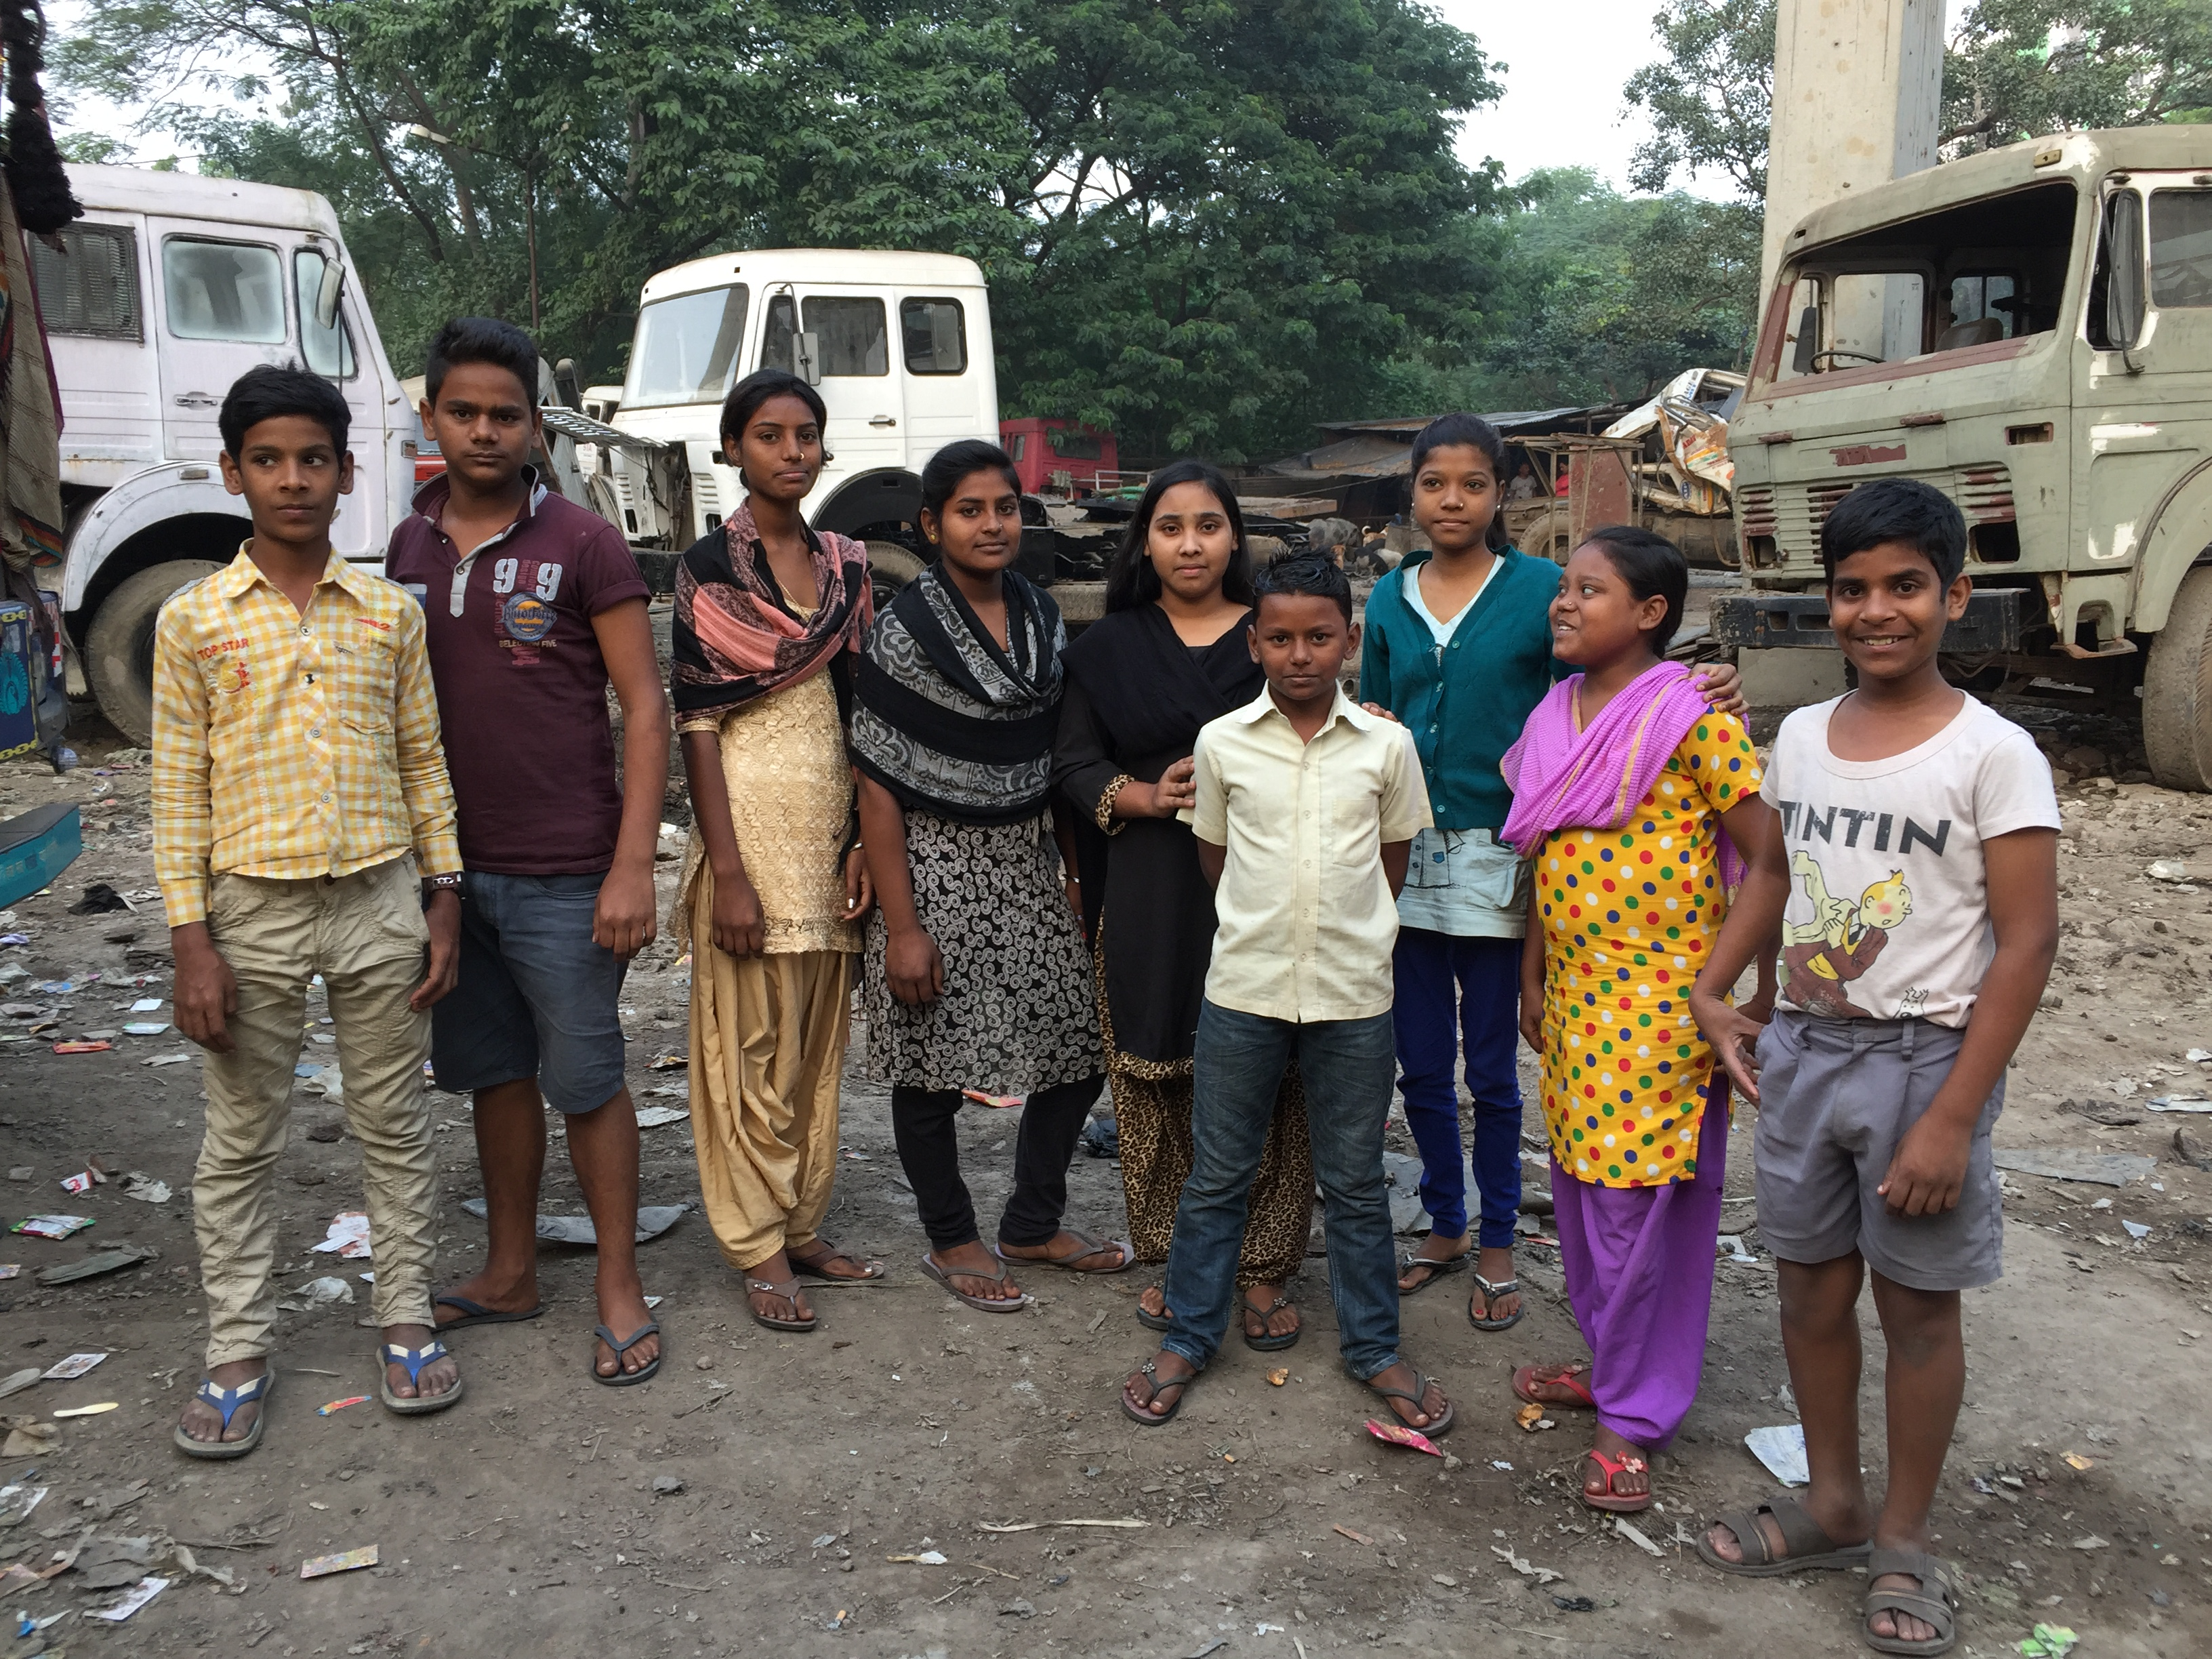 A group of children from the Shaktimaan group pose together in a slum in Kolkata, India, convincing child dropouts to go back to school.